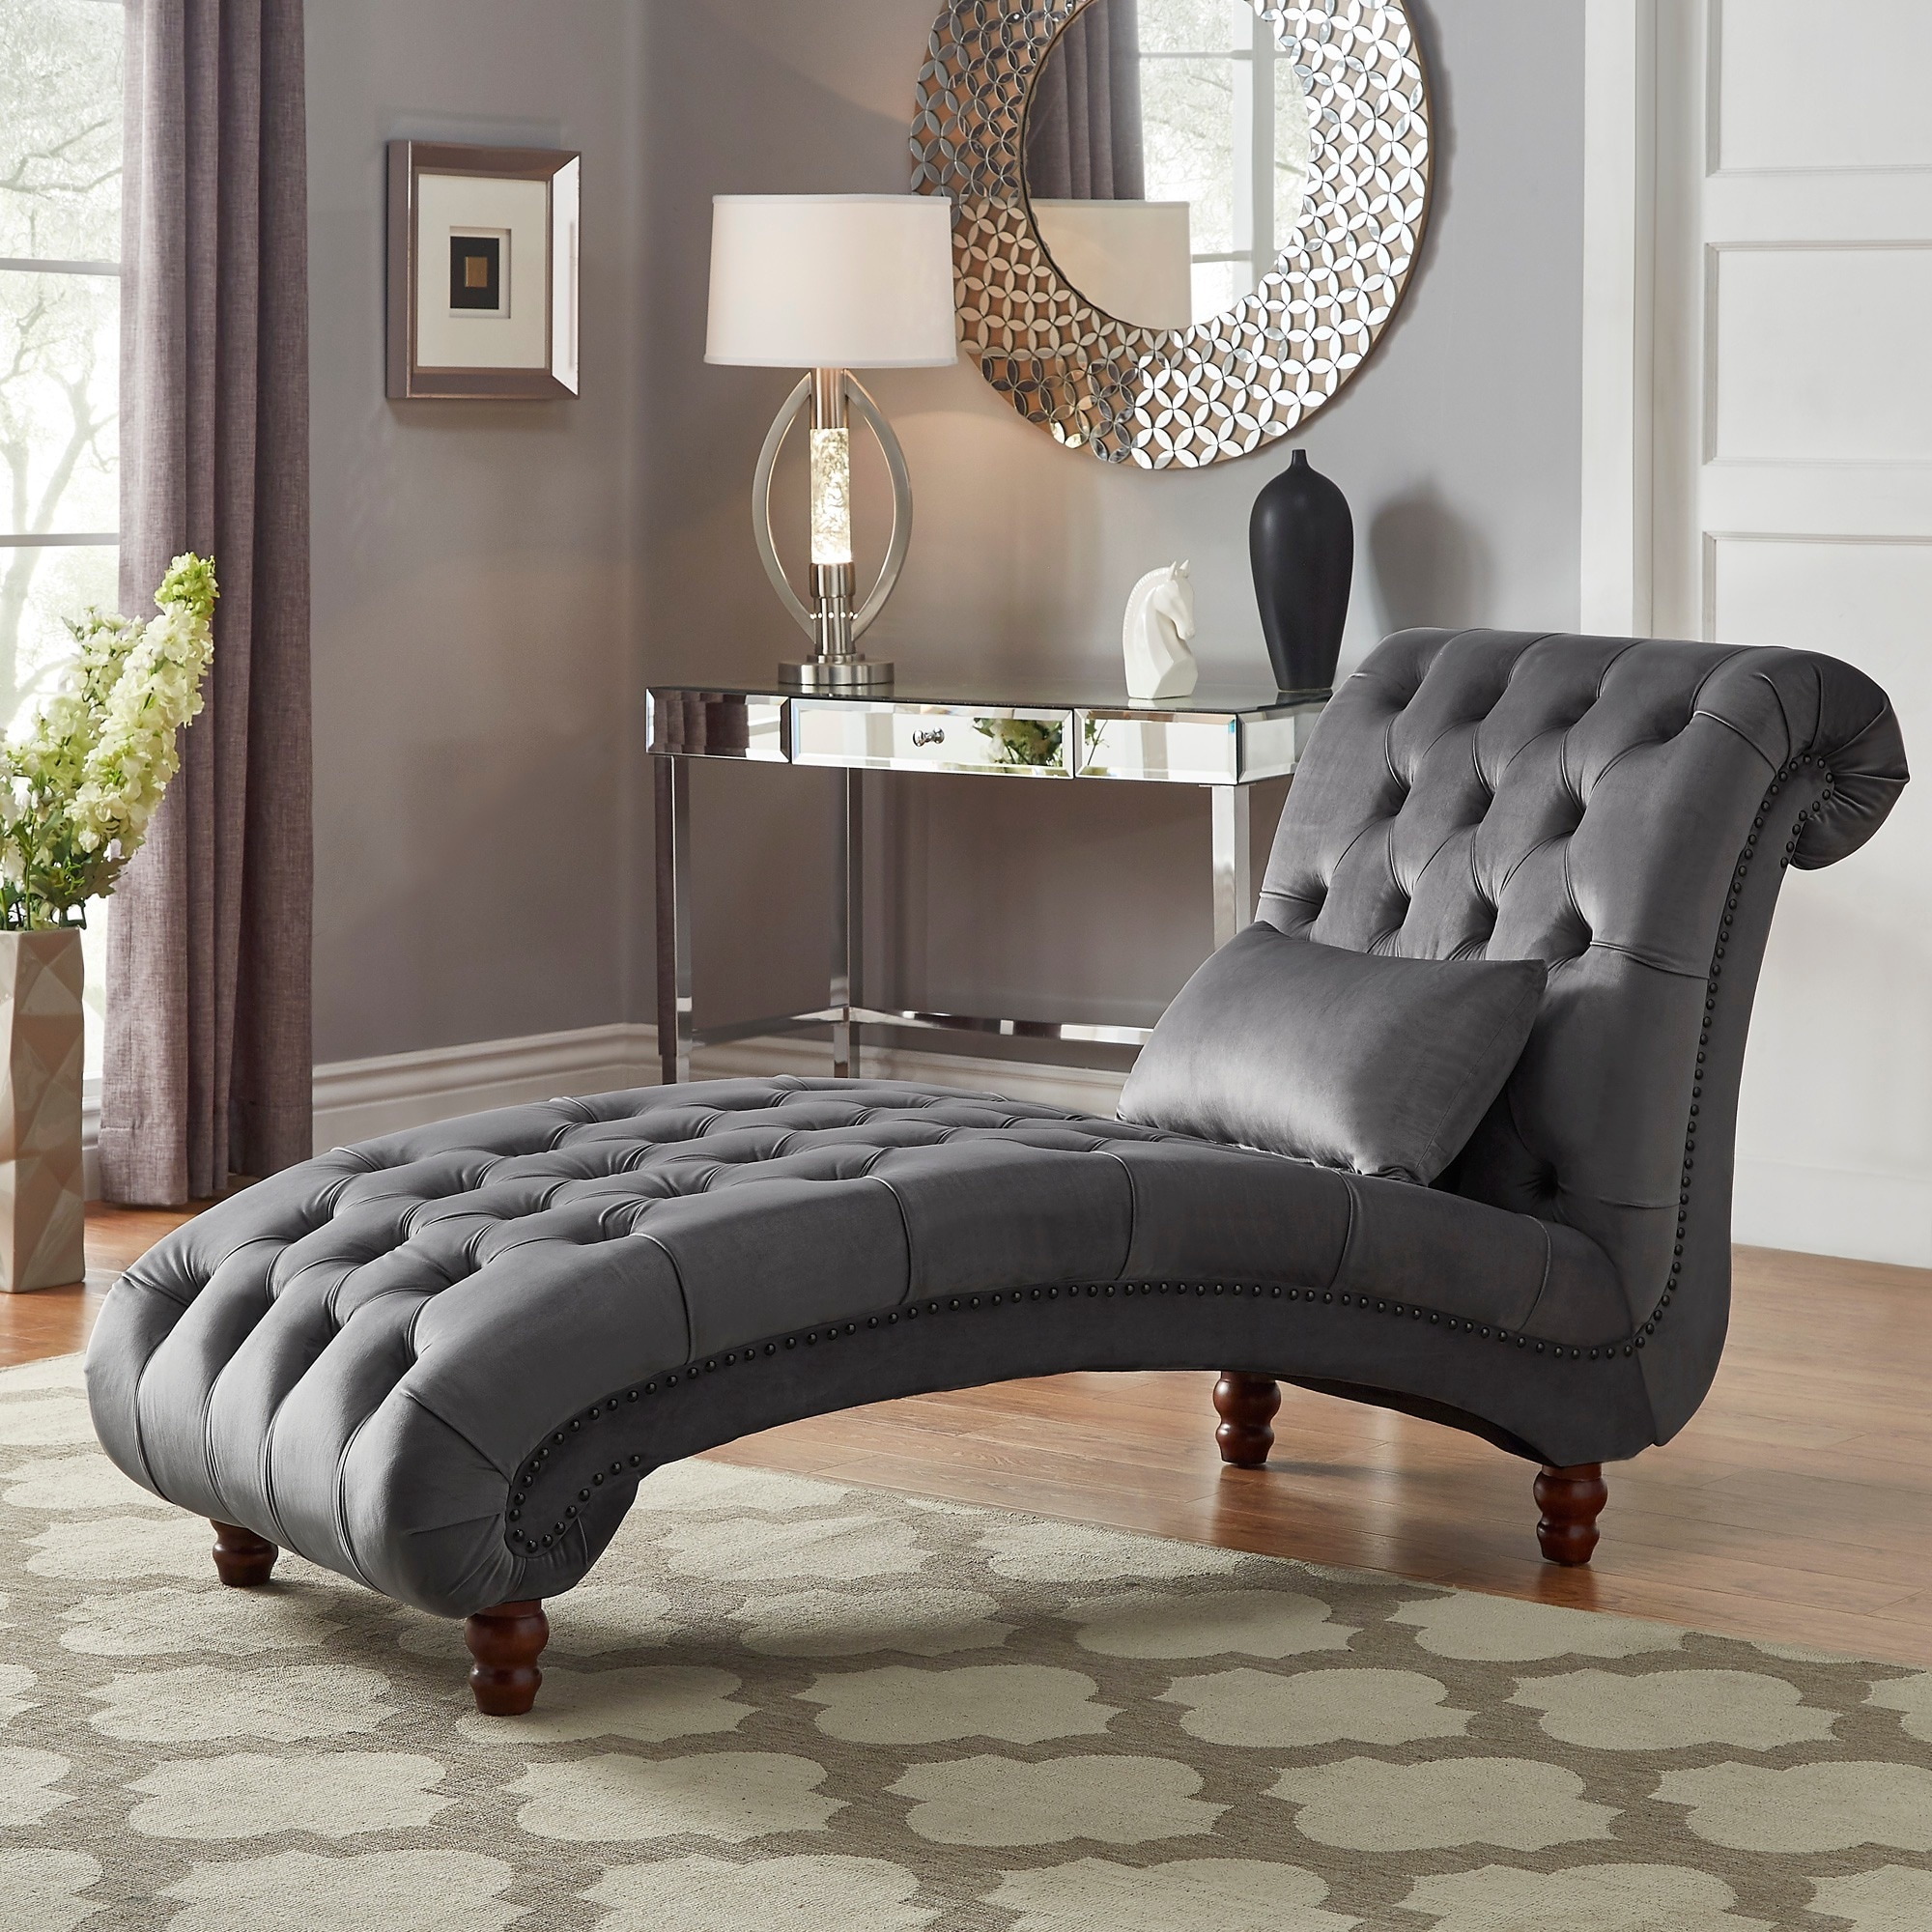 Shop knightsbridge tufted oversized chaise lounge by inspire q artisan on sale free shipping today overstock com 20603799